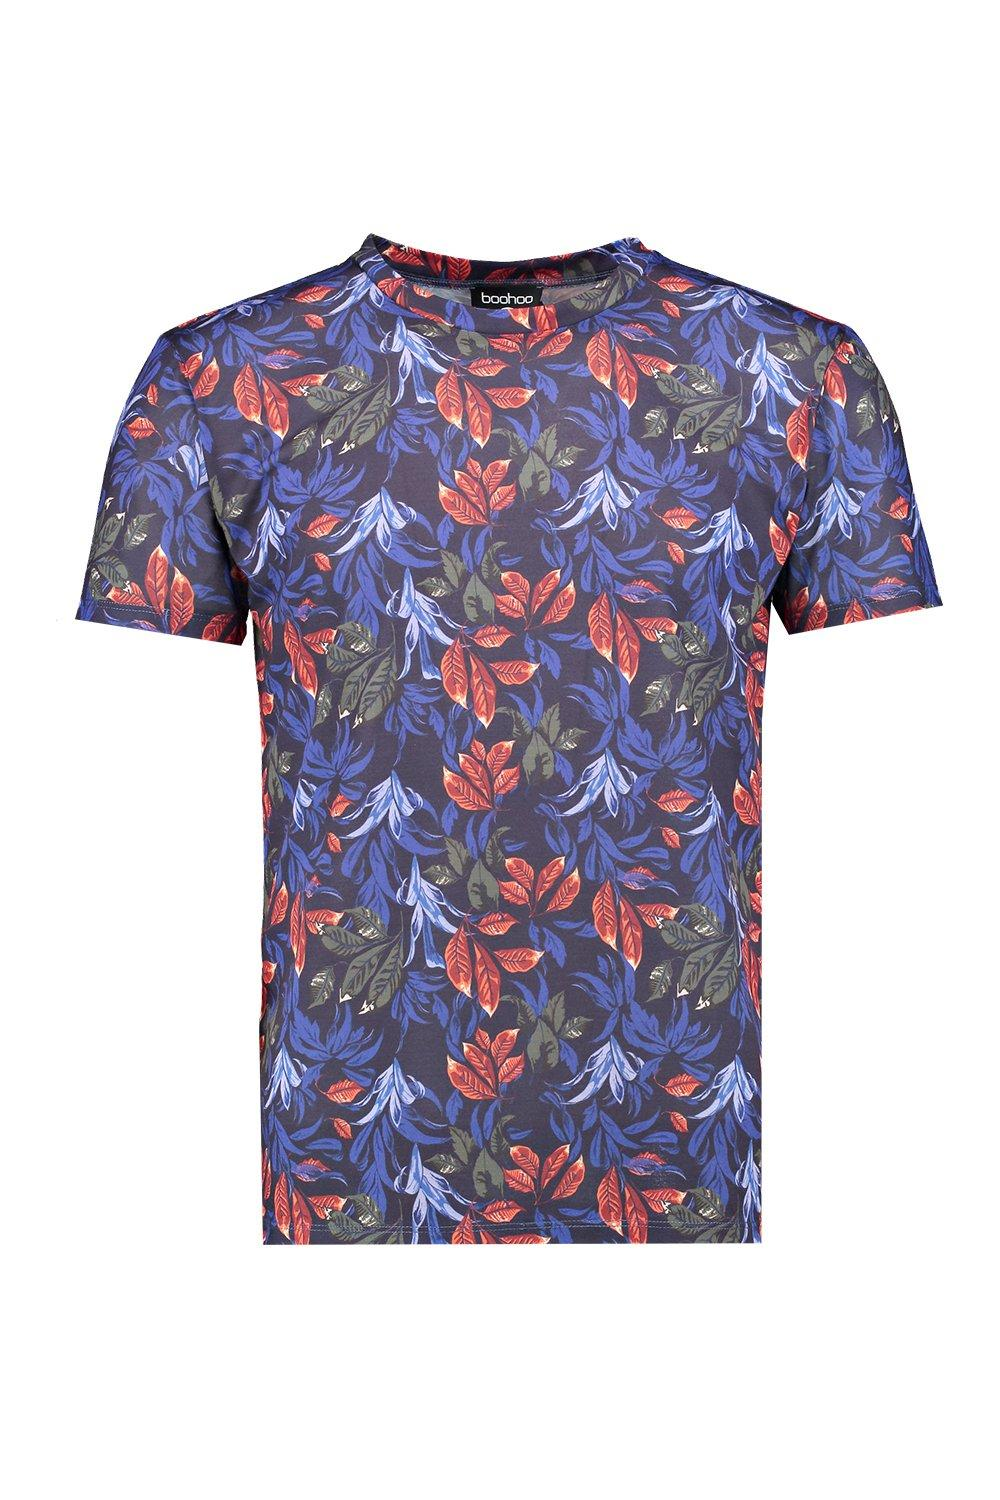 Boohoo mens all over floral sublimation t shirt ebay for Floral mens t shirts